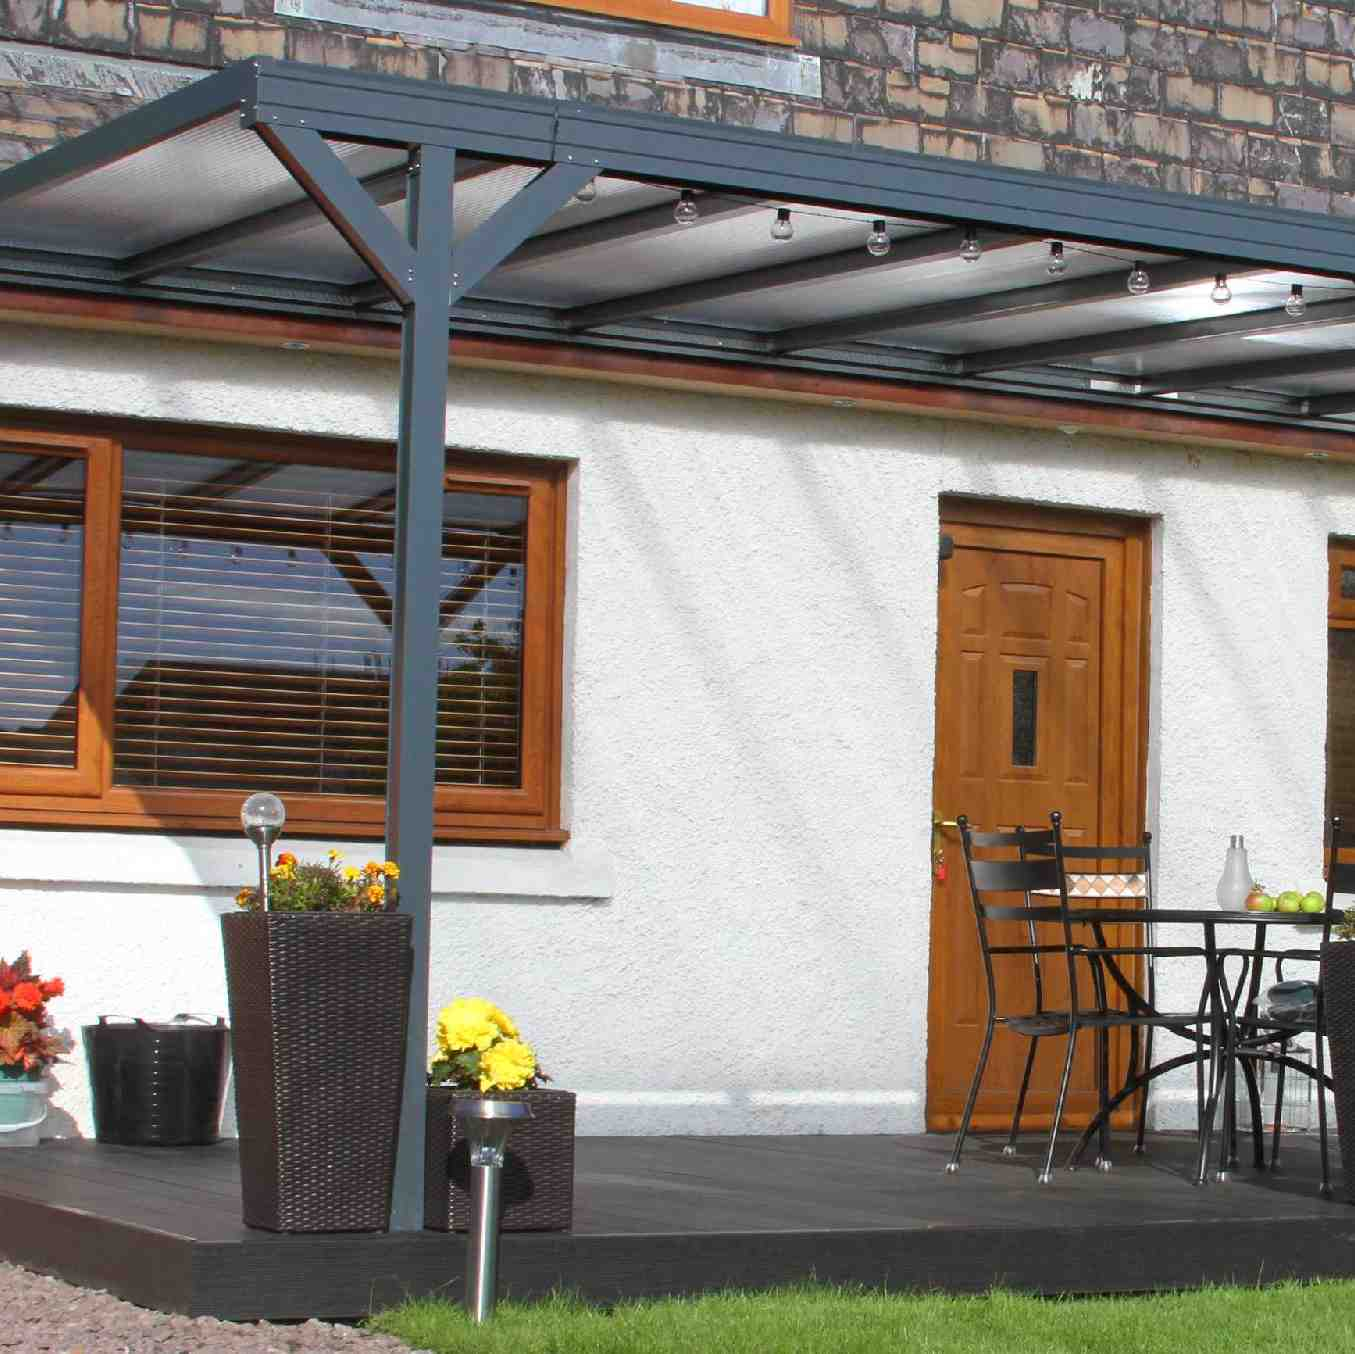 Omega Verandah, Anthracite Grey, 6mm Glass Clear Plate Polycarbonate Glazing - 7.4m (W) x 4.0m (P), (4) Supporting Posts